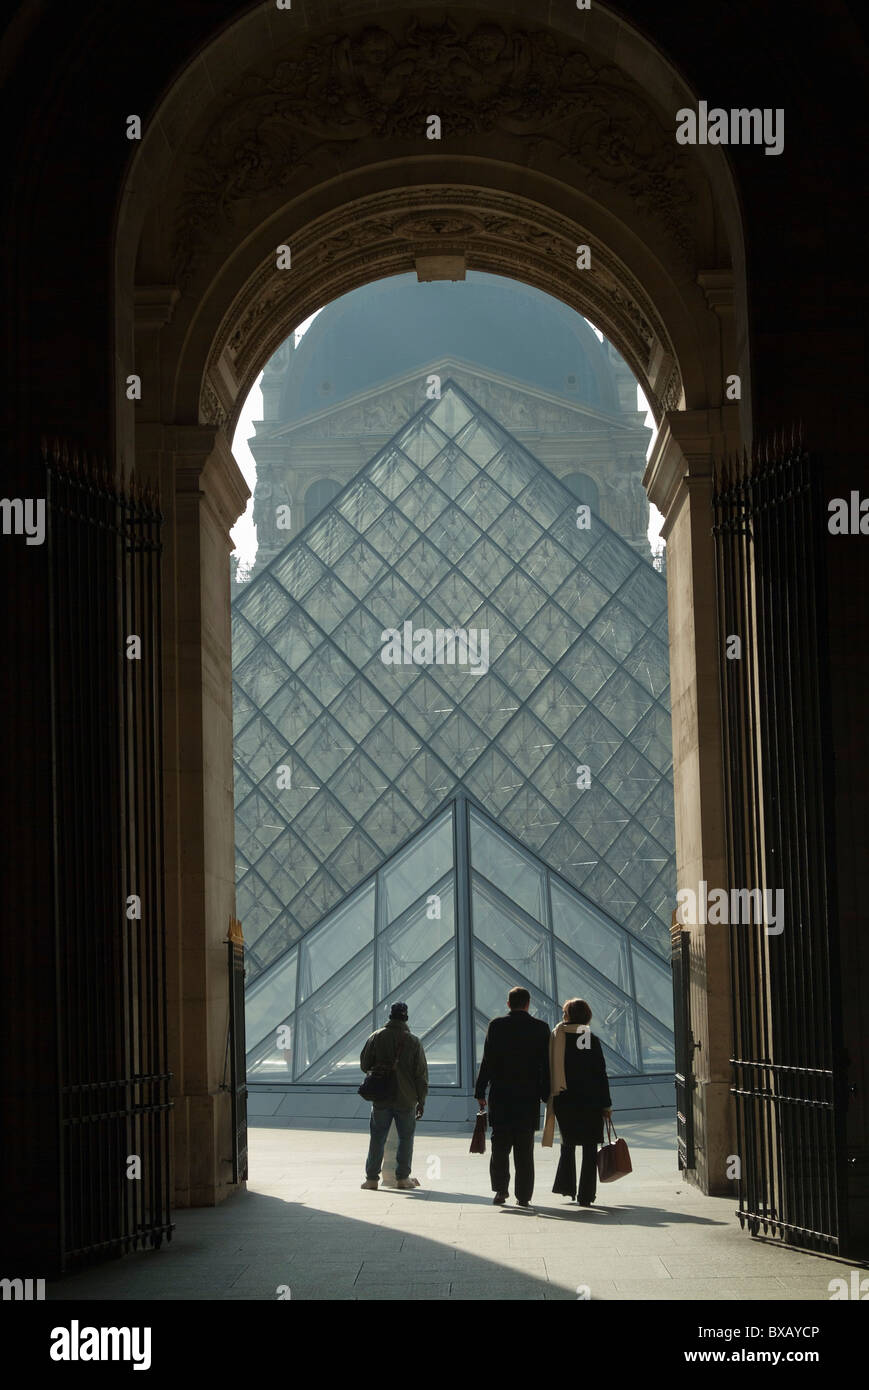 The Louvre Pyramid, seen from a grand archway, Paris, France. - Stock Image